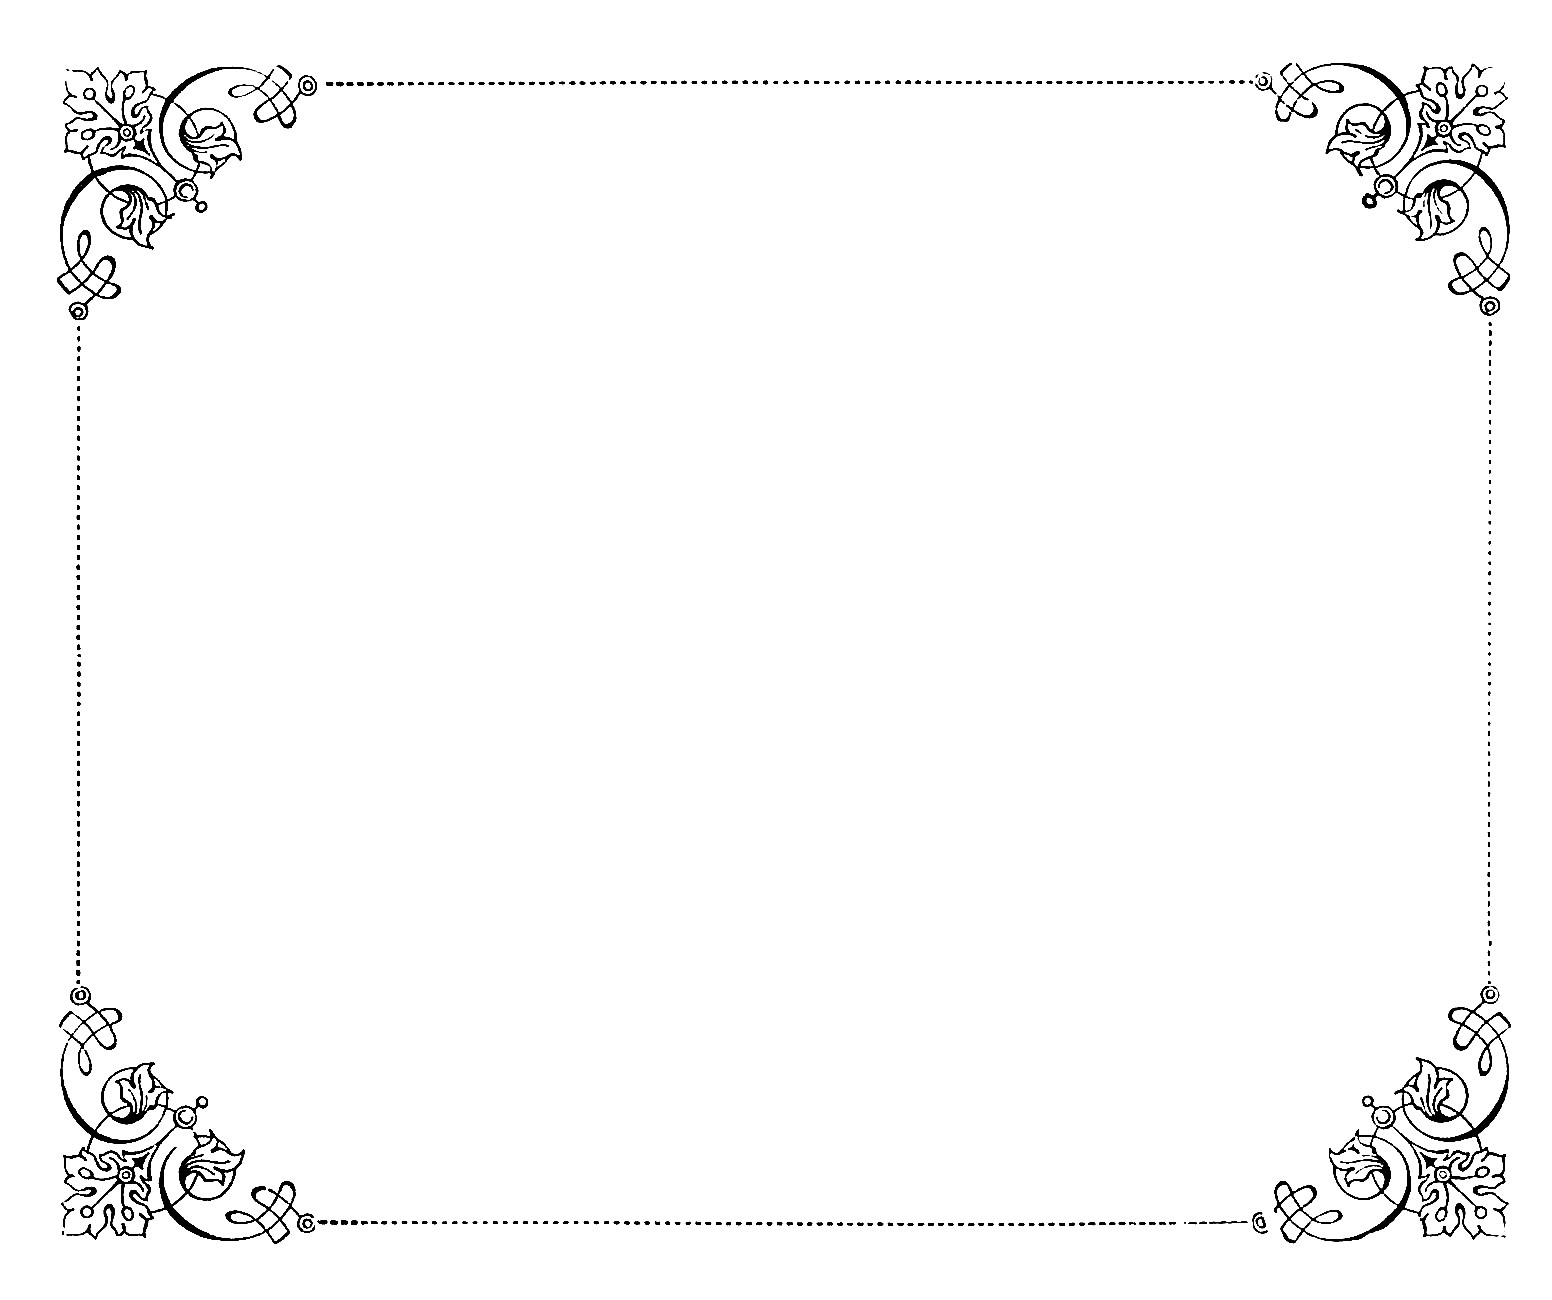 56 569911 Best Of Gold Swirl Clip Art Elegant Borders Png On Border.